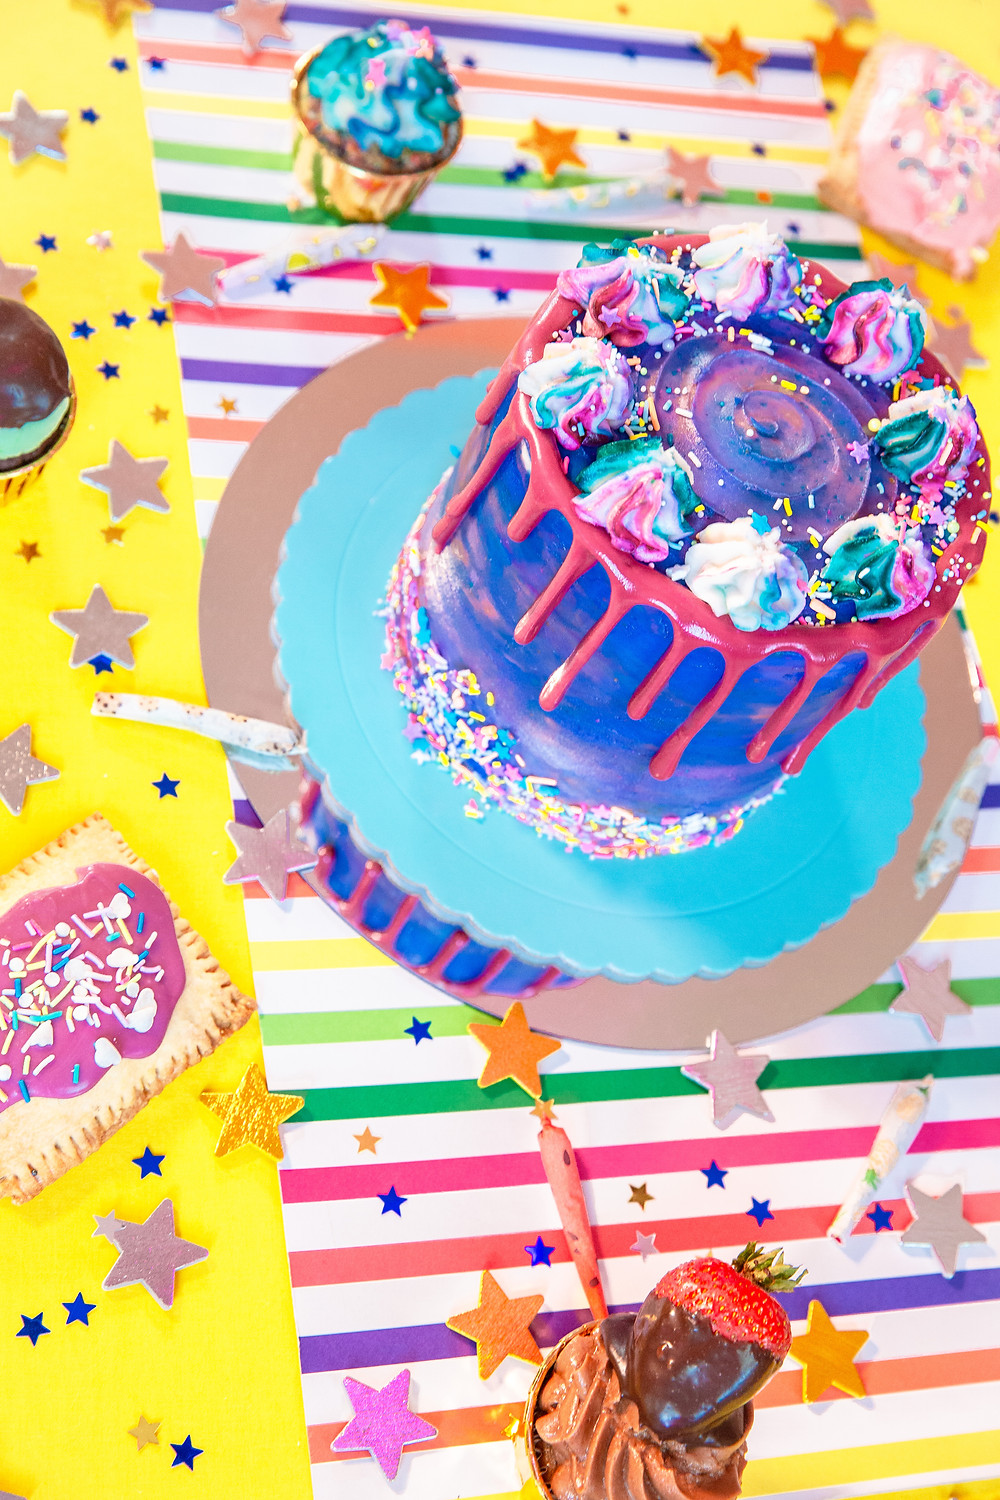 A colorful decorated cake on a table covered in decorations and other pastries